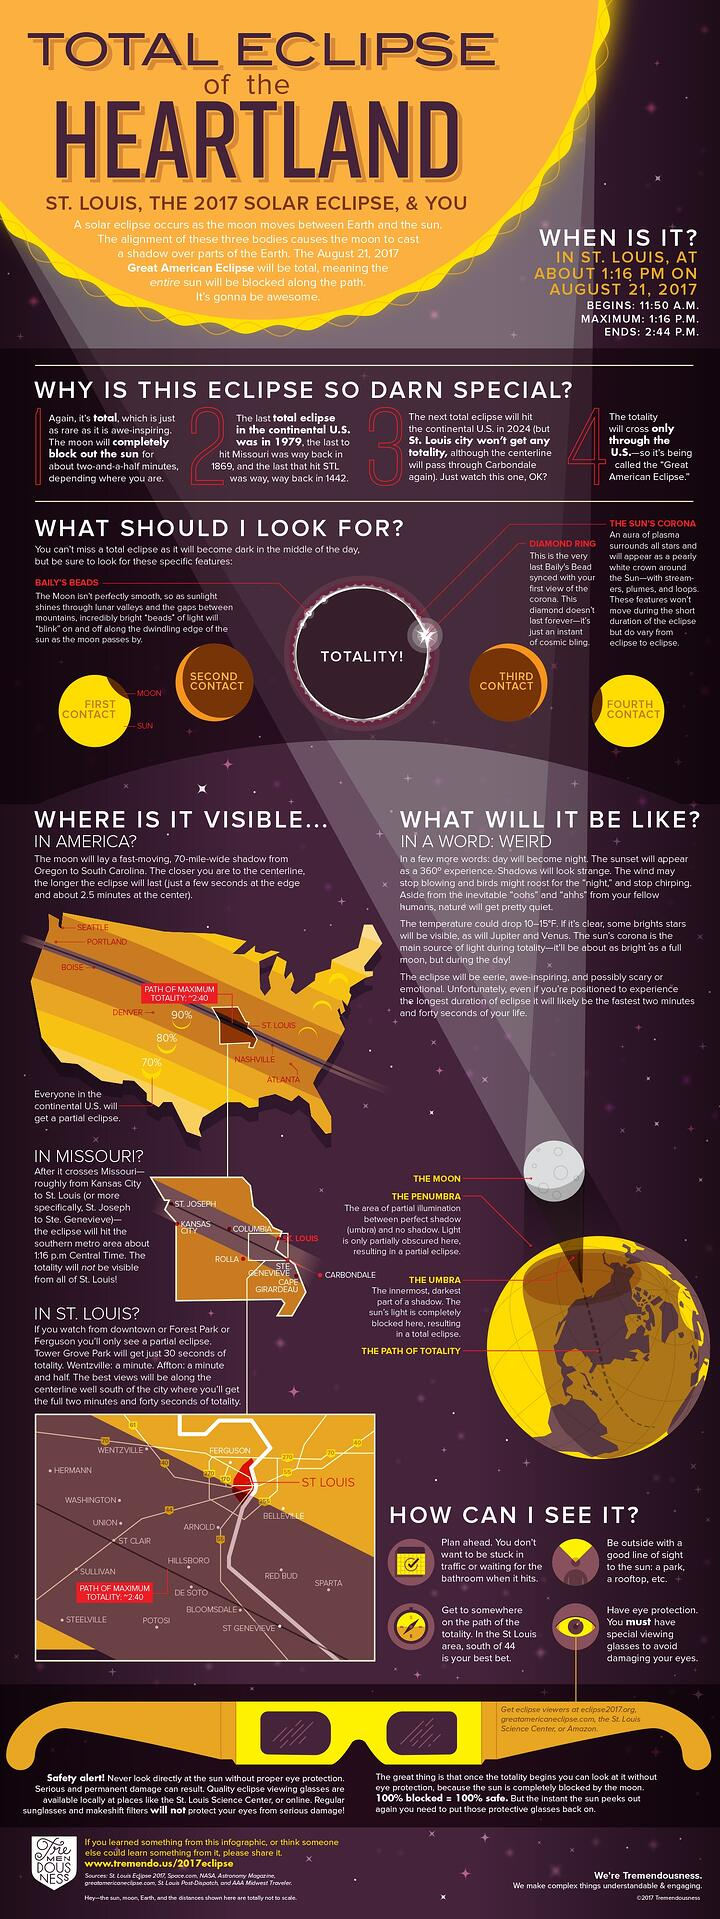 Total Eclipse of the Heartland: The 2017 Solar Eclipse